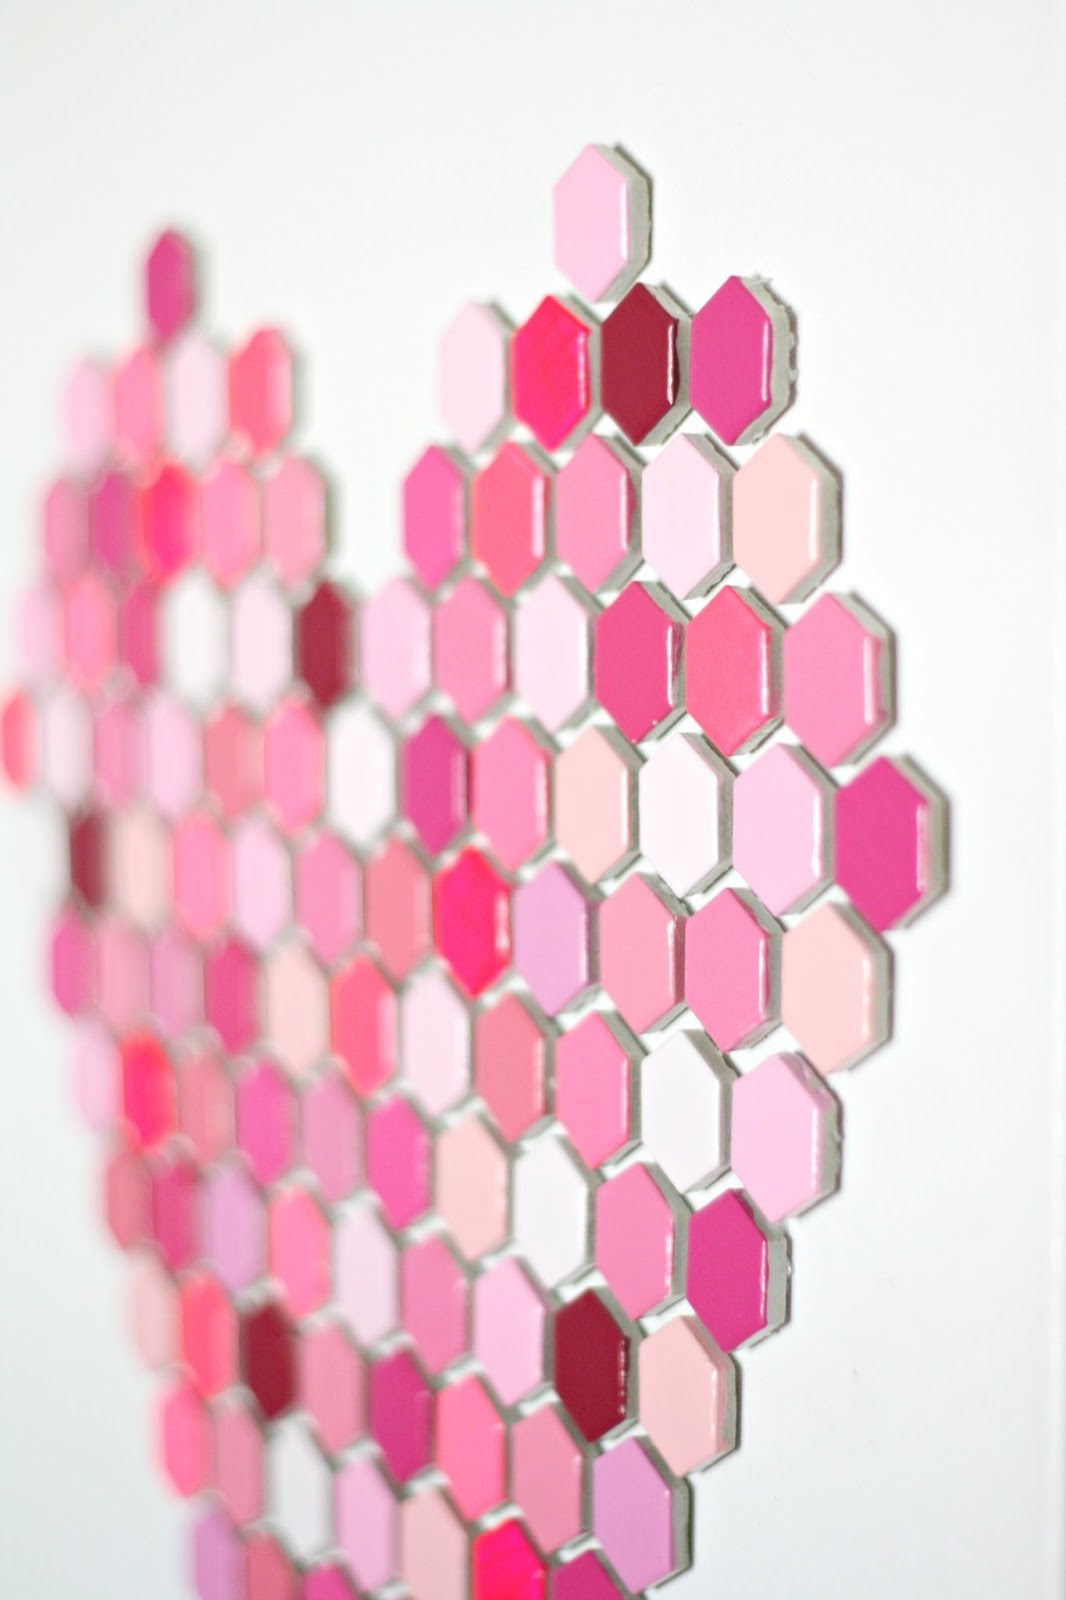 diy hexagon tile heart art 7